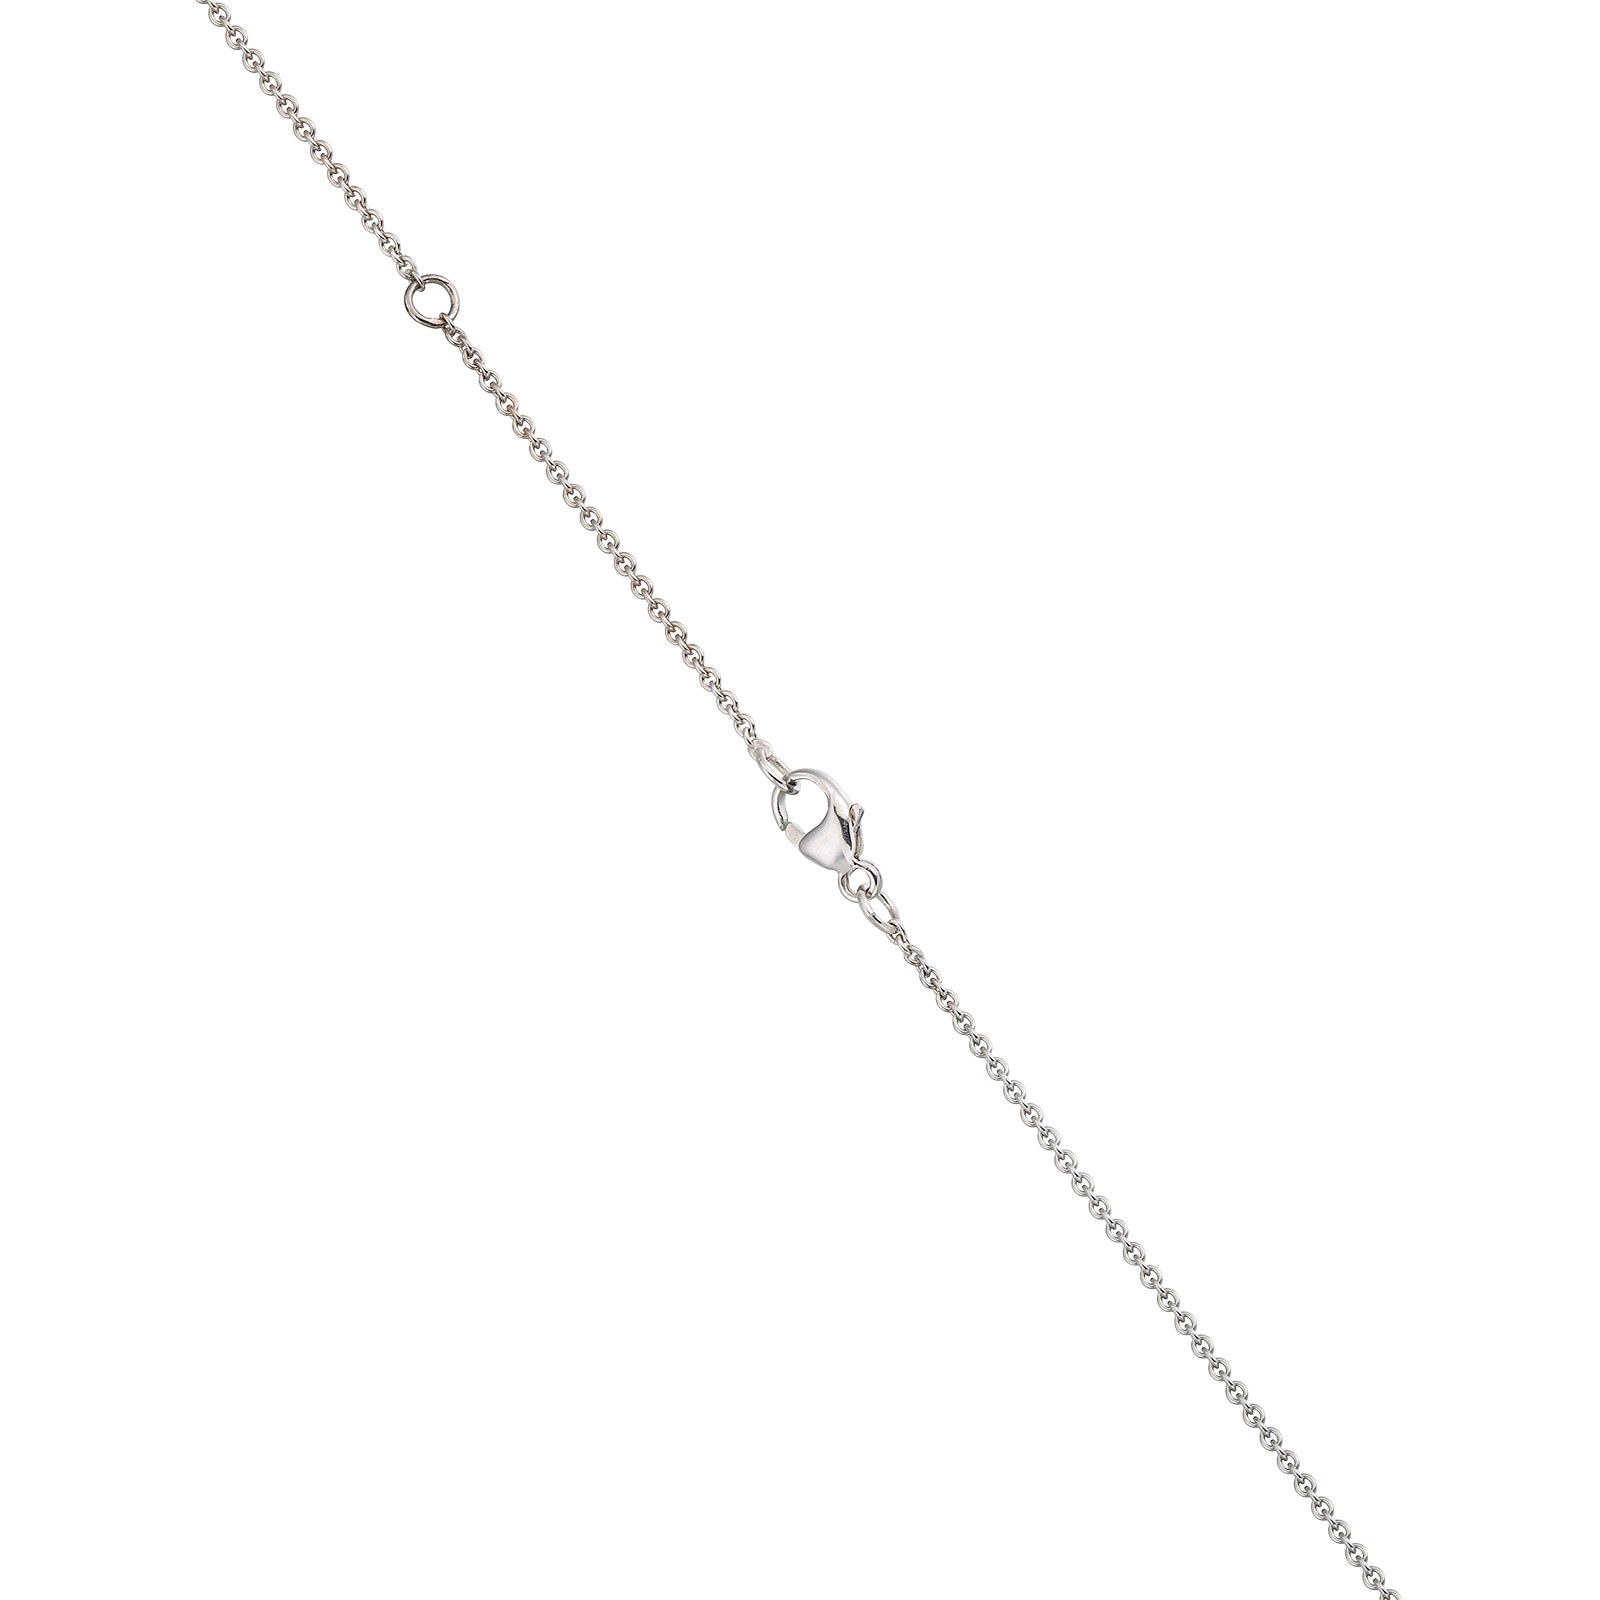 Astral Cluster Pendant in White Gold-PEDIWG1003-1